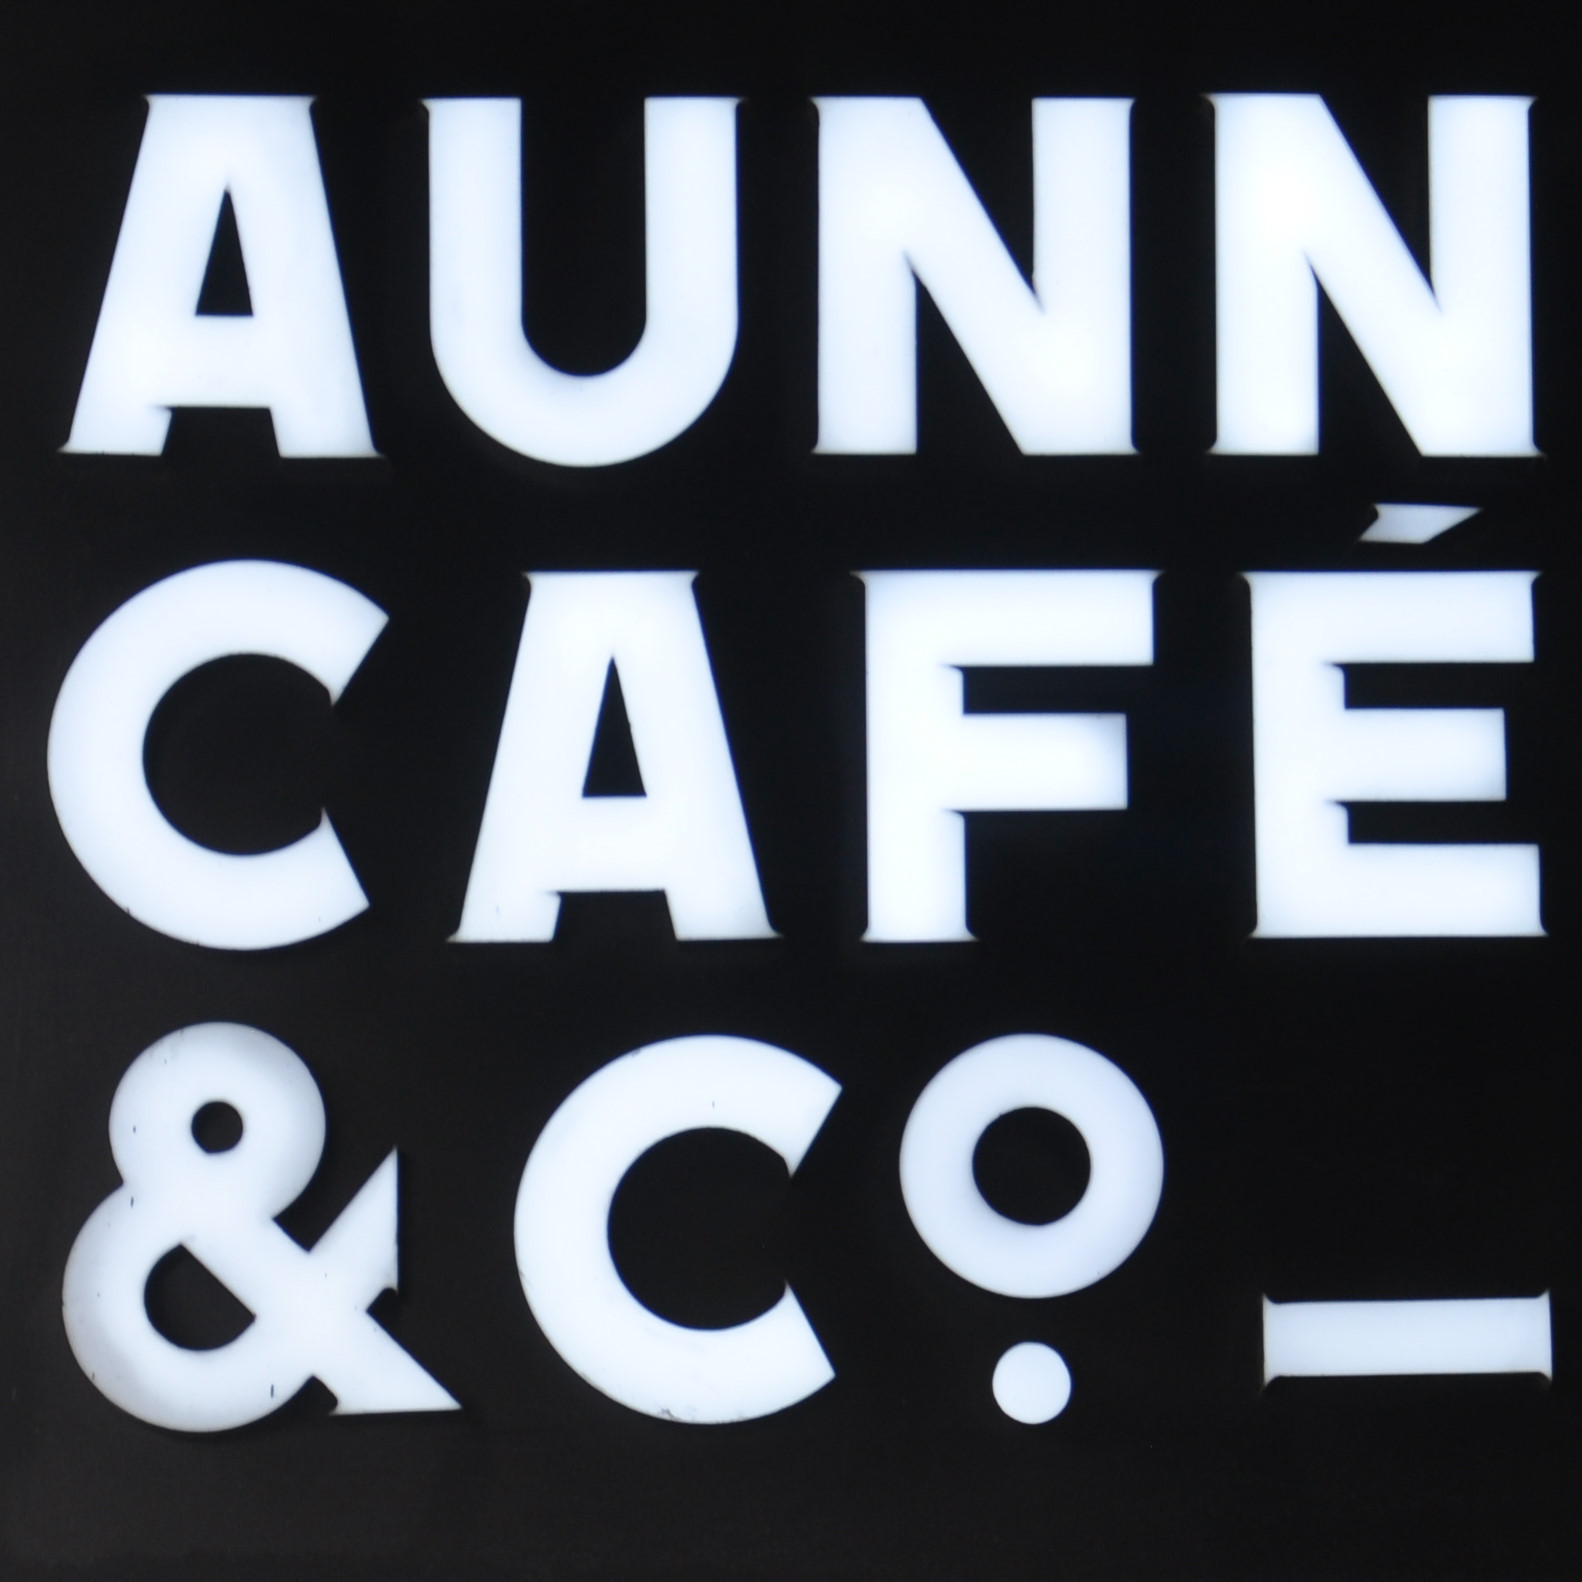 The sign hanging outside AUNN Cafe & Co. in Shanghai